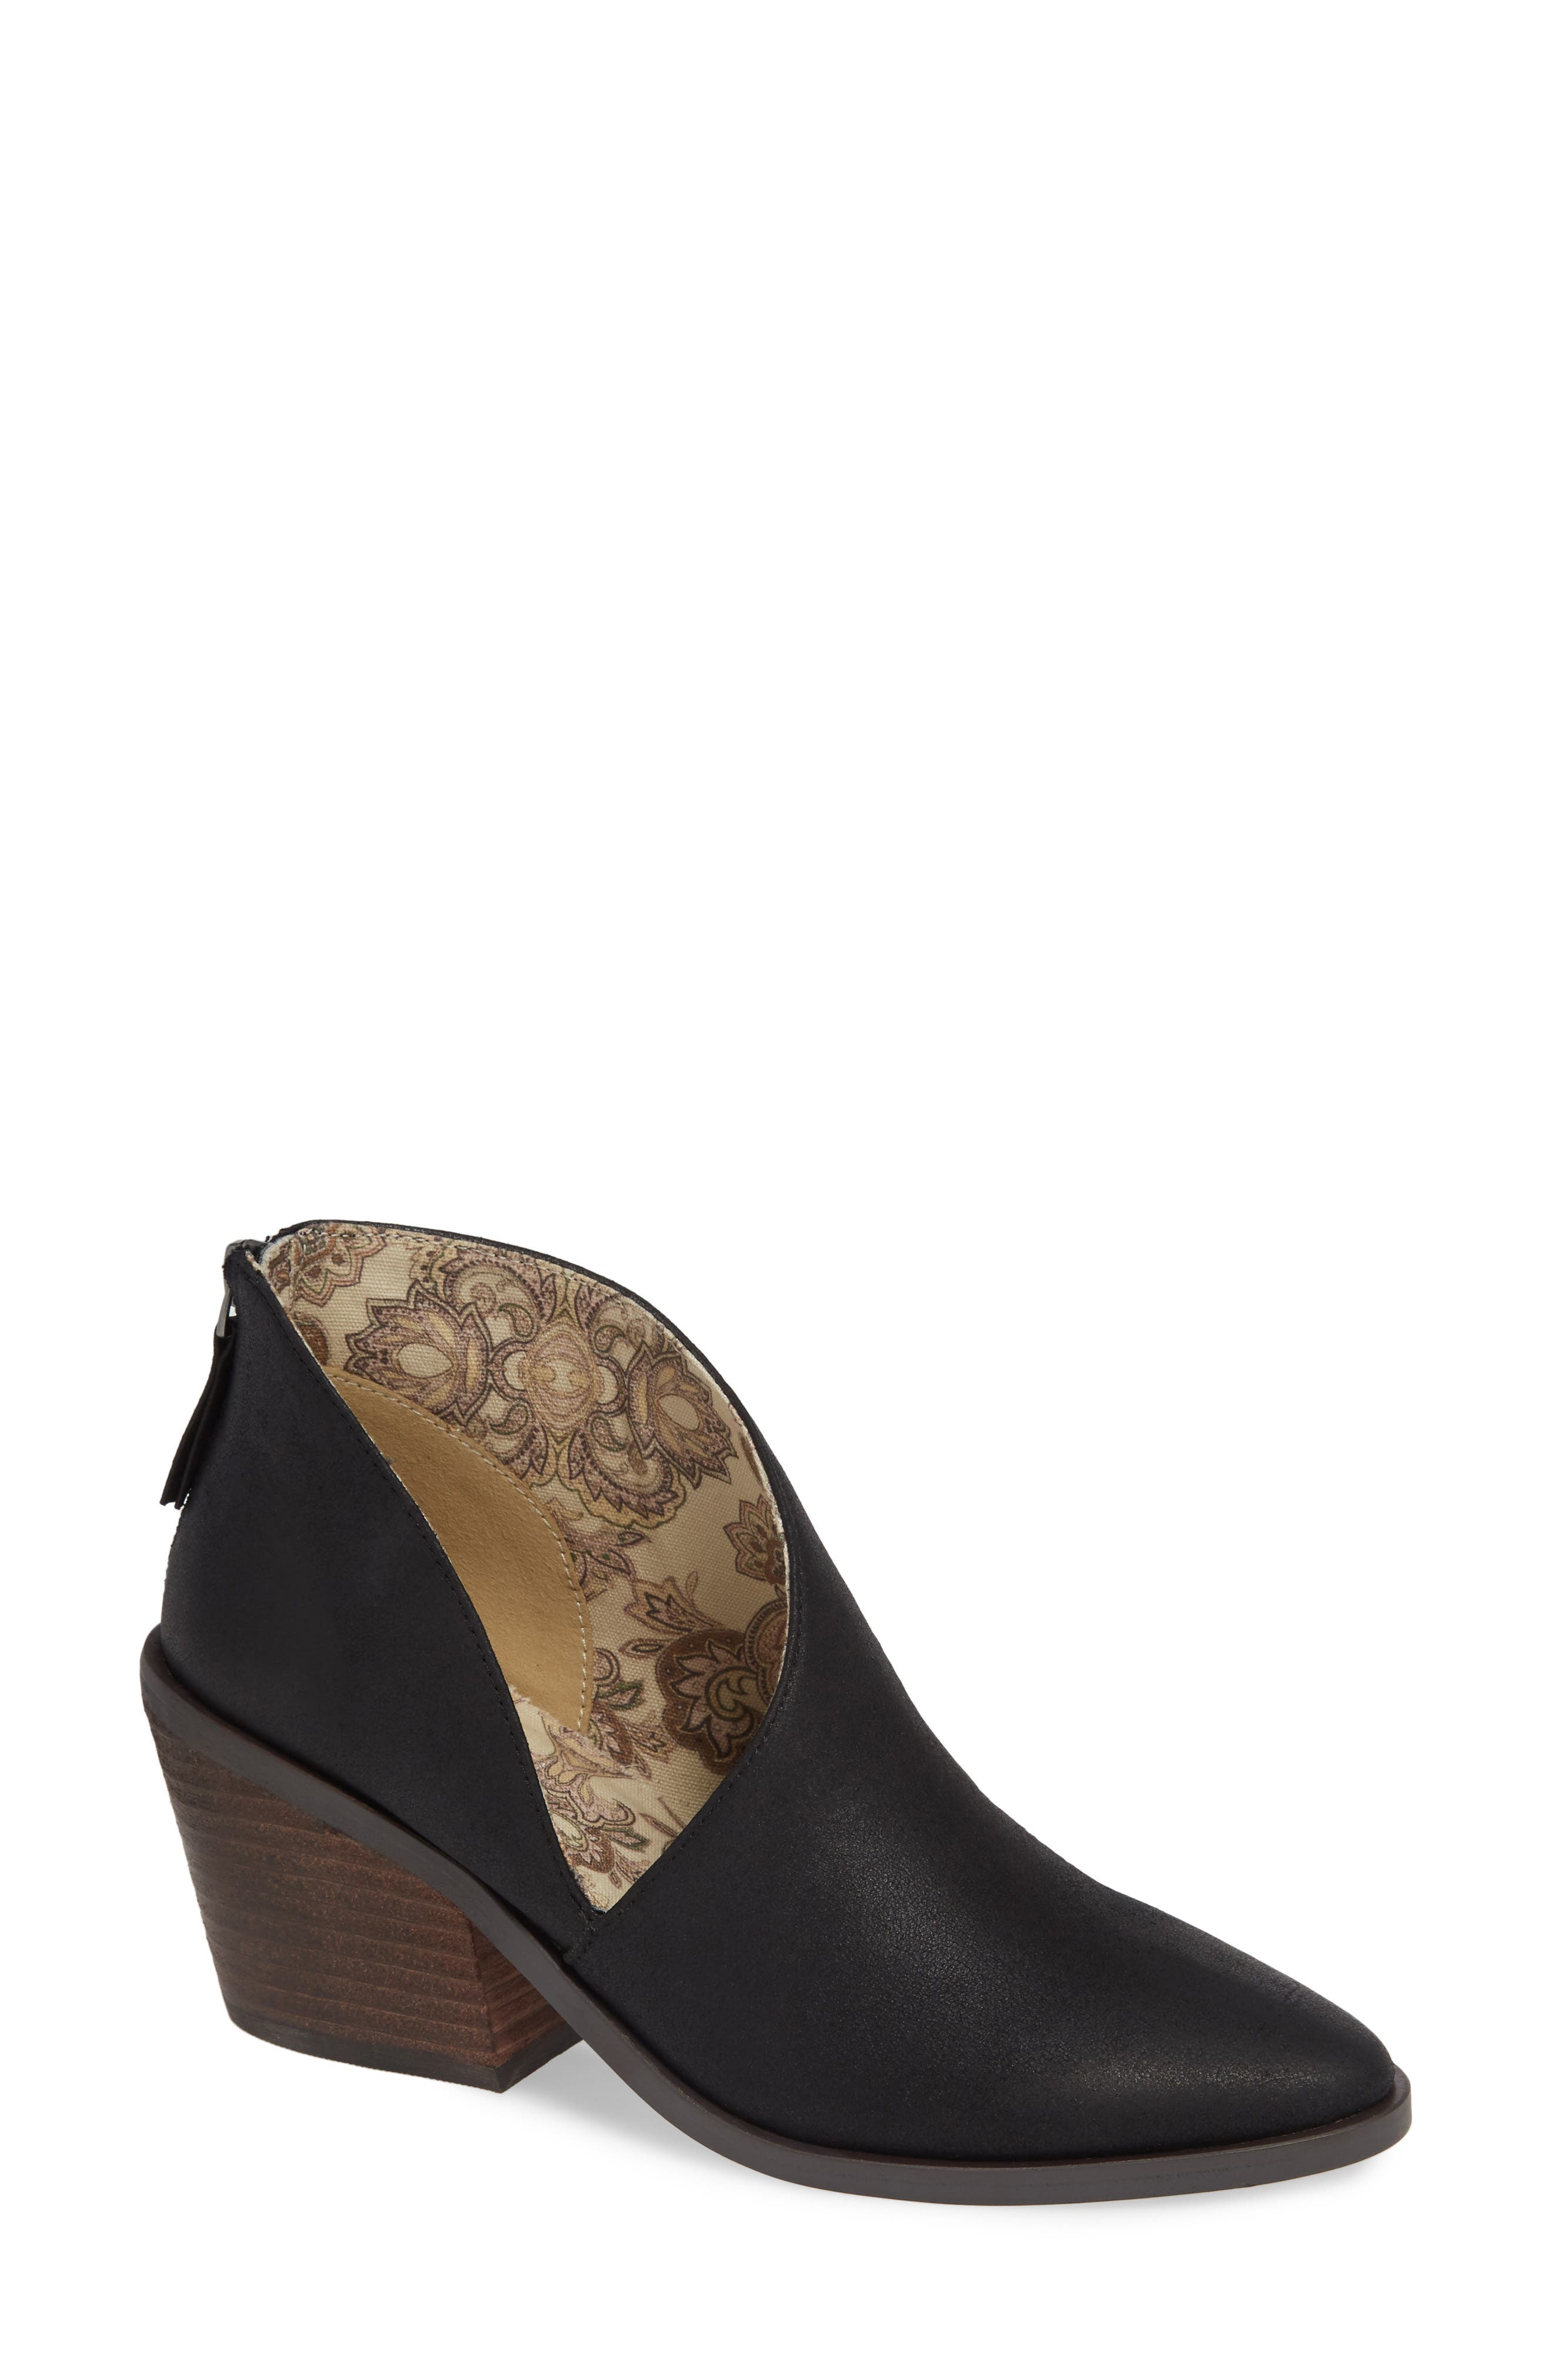 BAND OF GYPSIES Tusk Bootie in Black Faux Leather